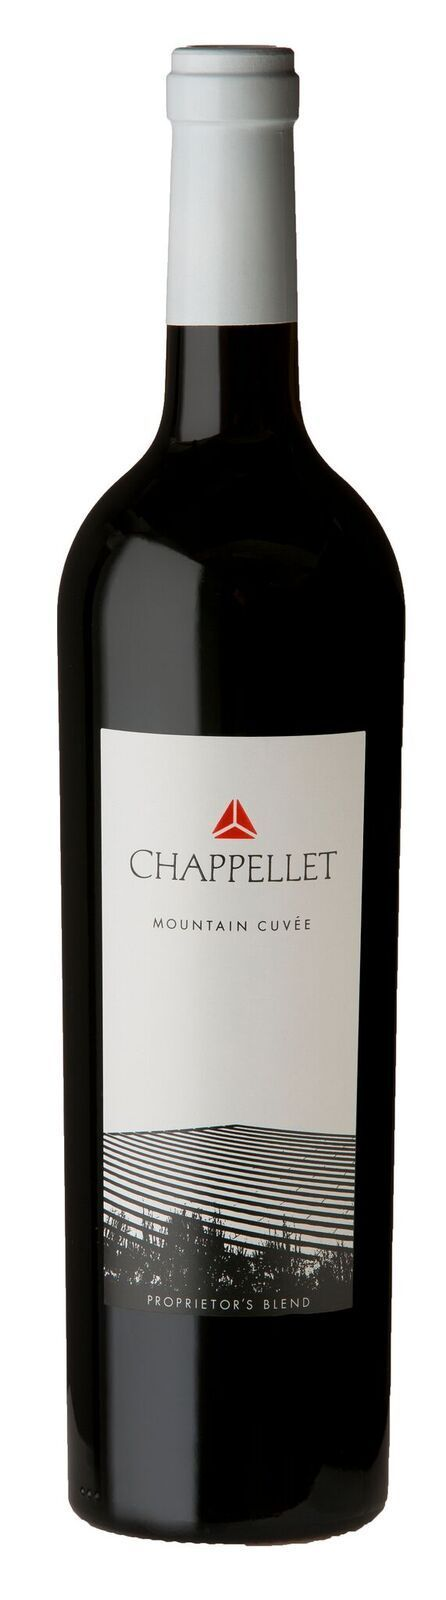 International Red Blend Chappellet 2016 Mountain Cuvée Proprietor's Red, Napa Valley